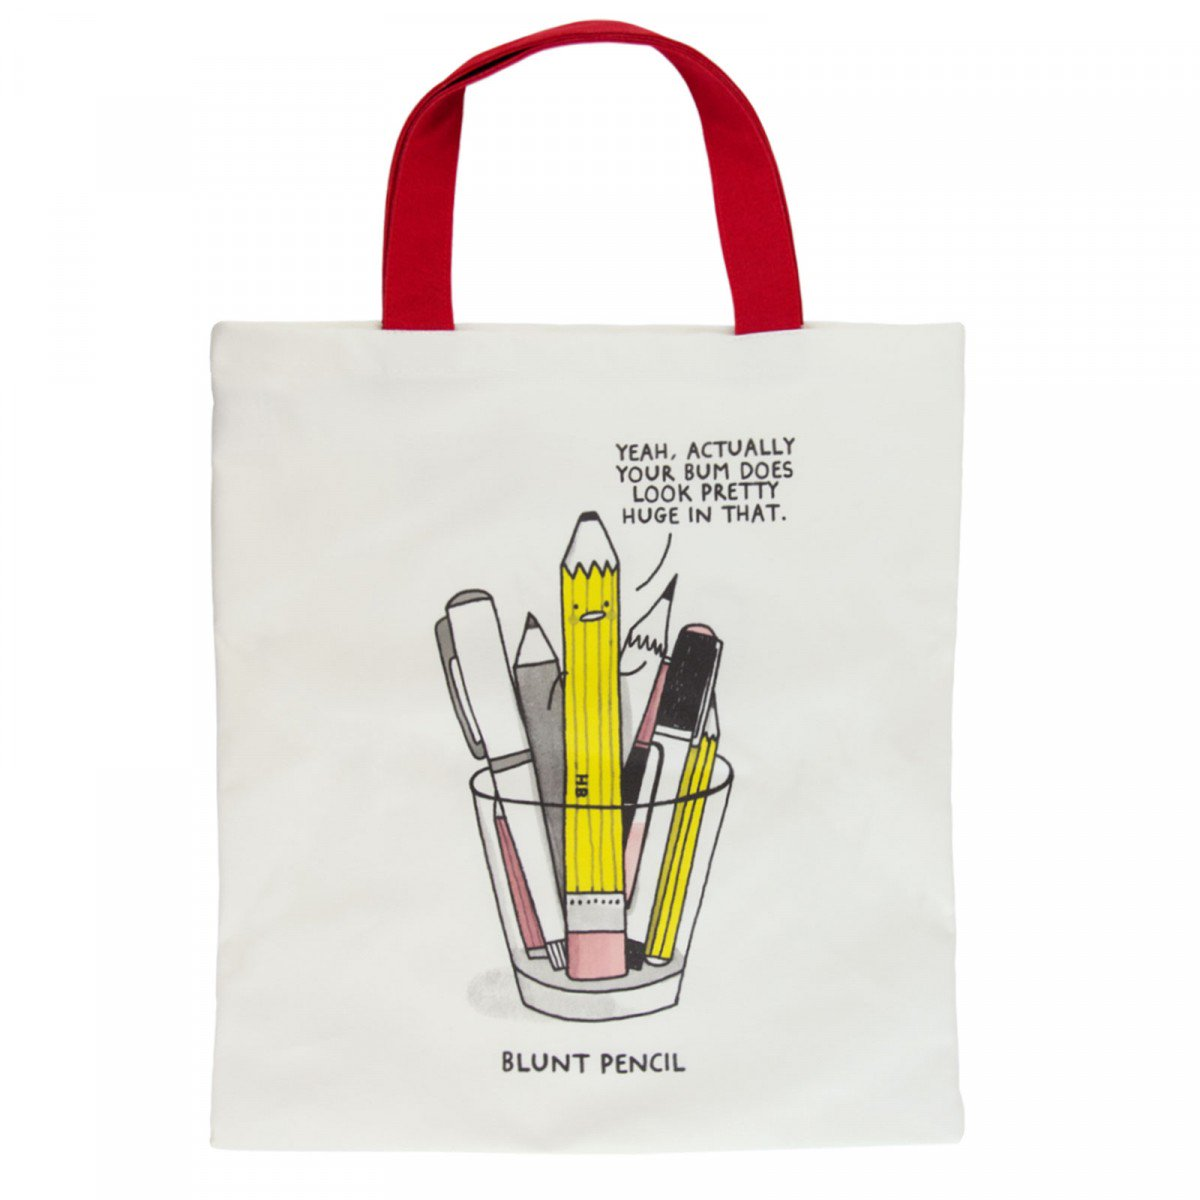 blunt-pencil-tote-bag gifts for designers